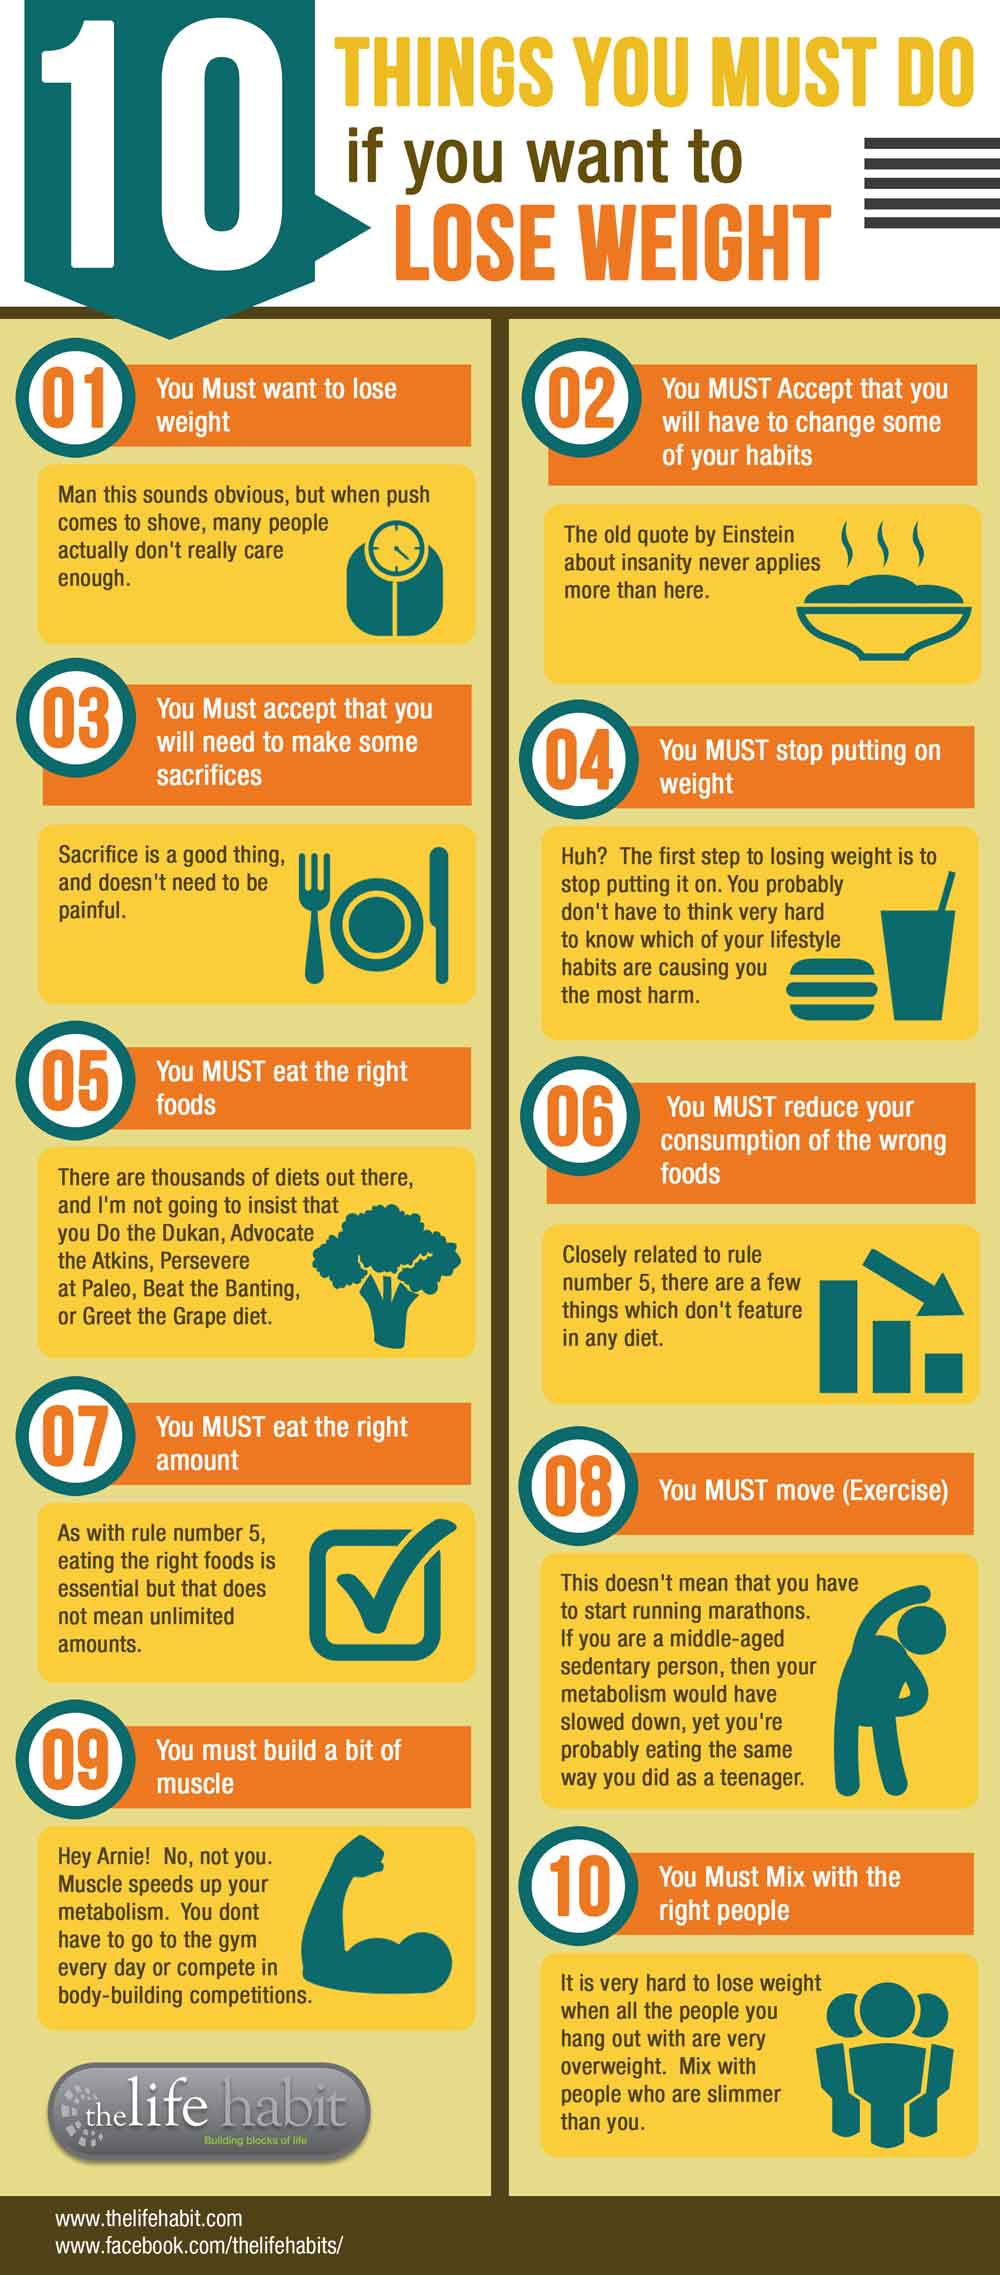 10 things you must do if you want to lose weight - infographic